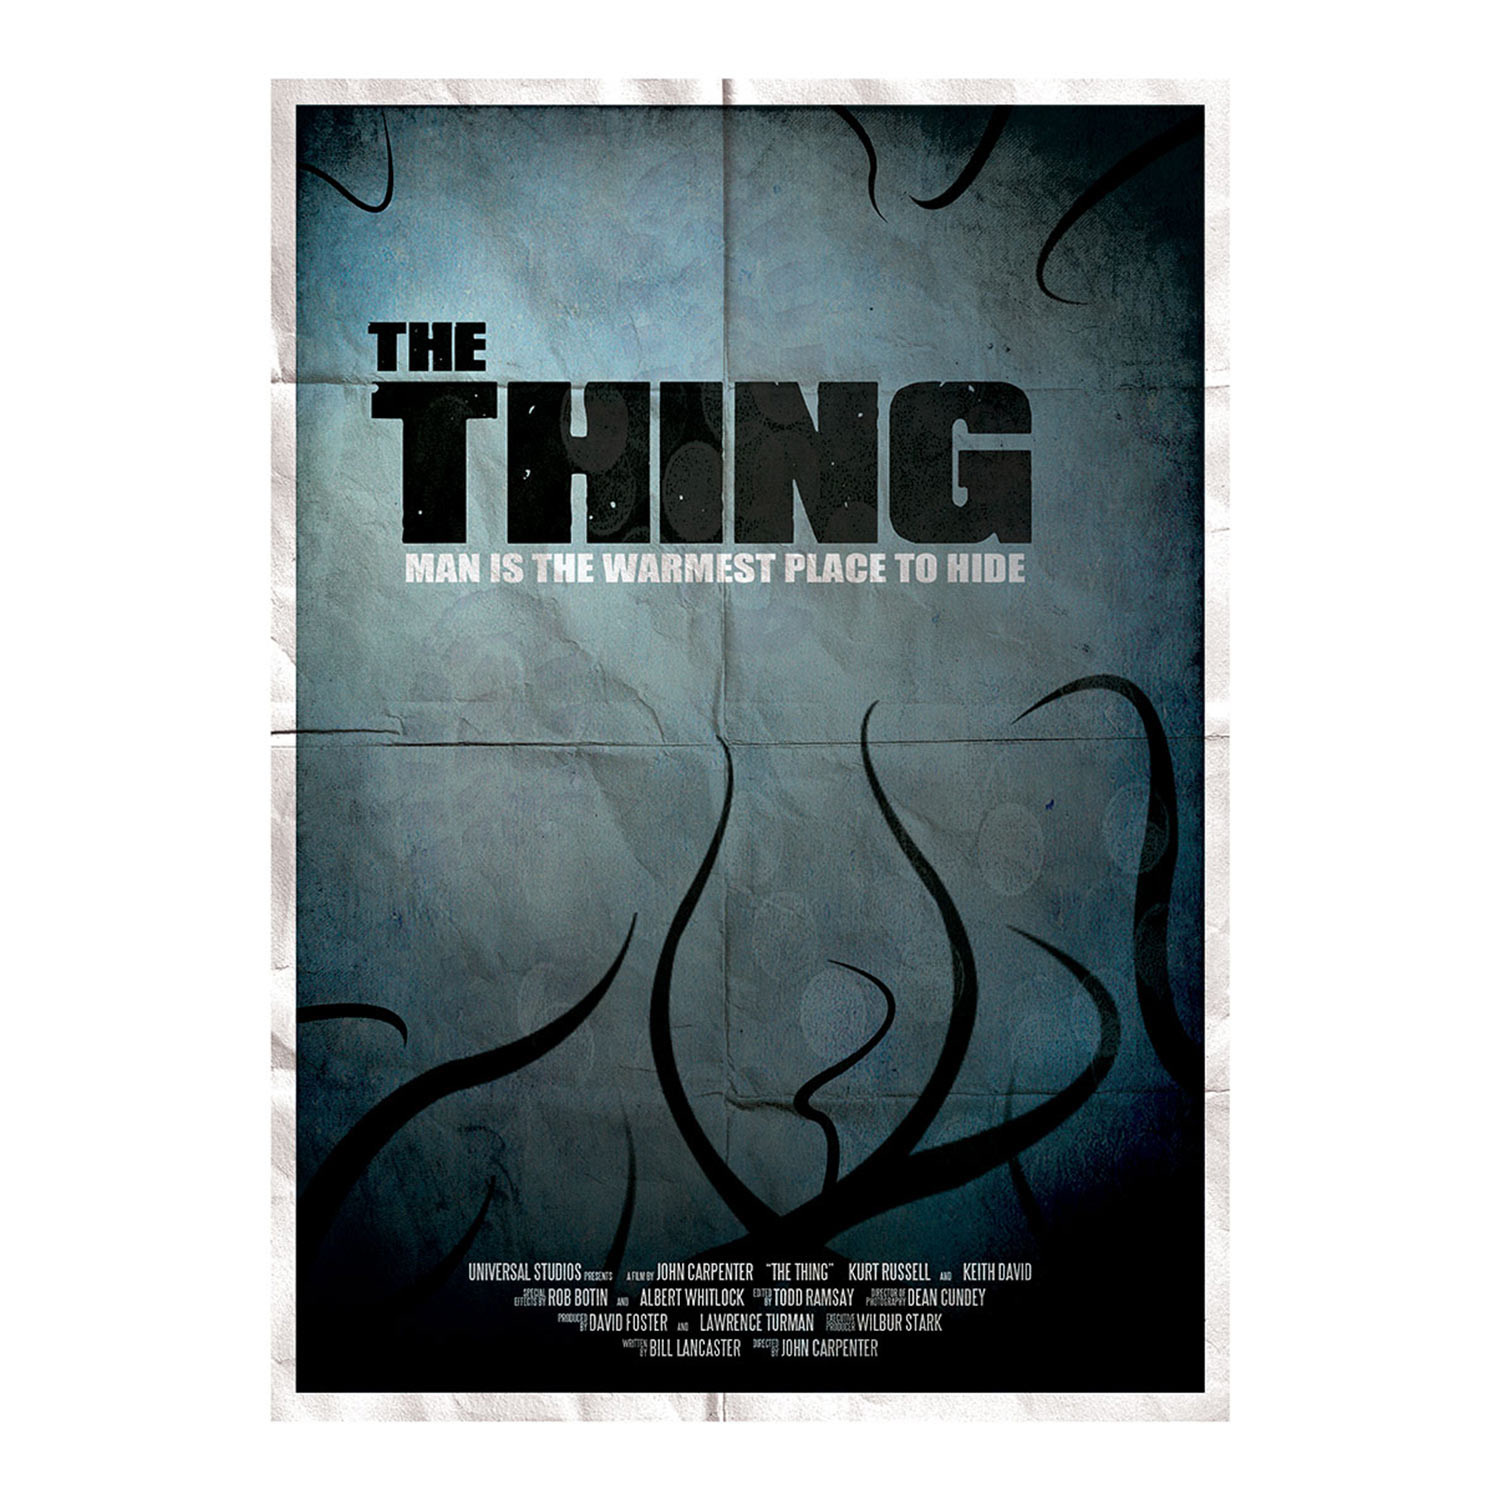 Poster design john foster - The Thing